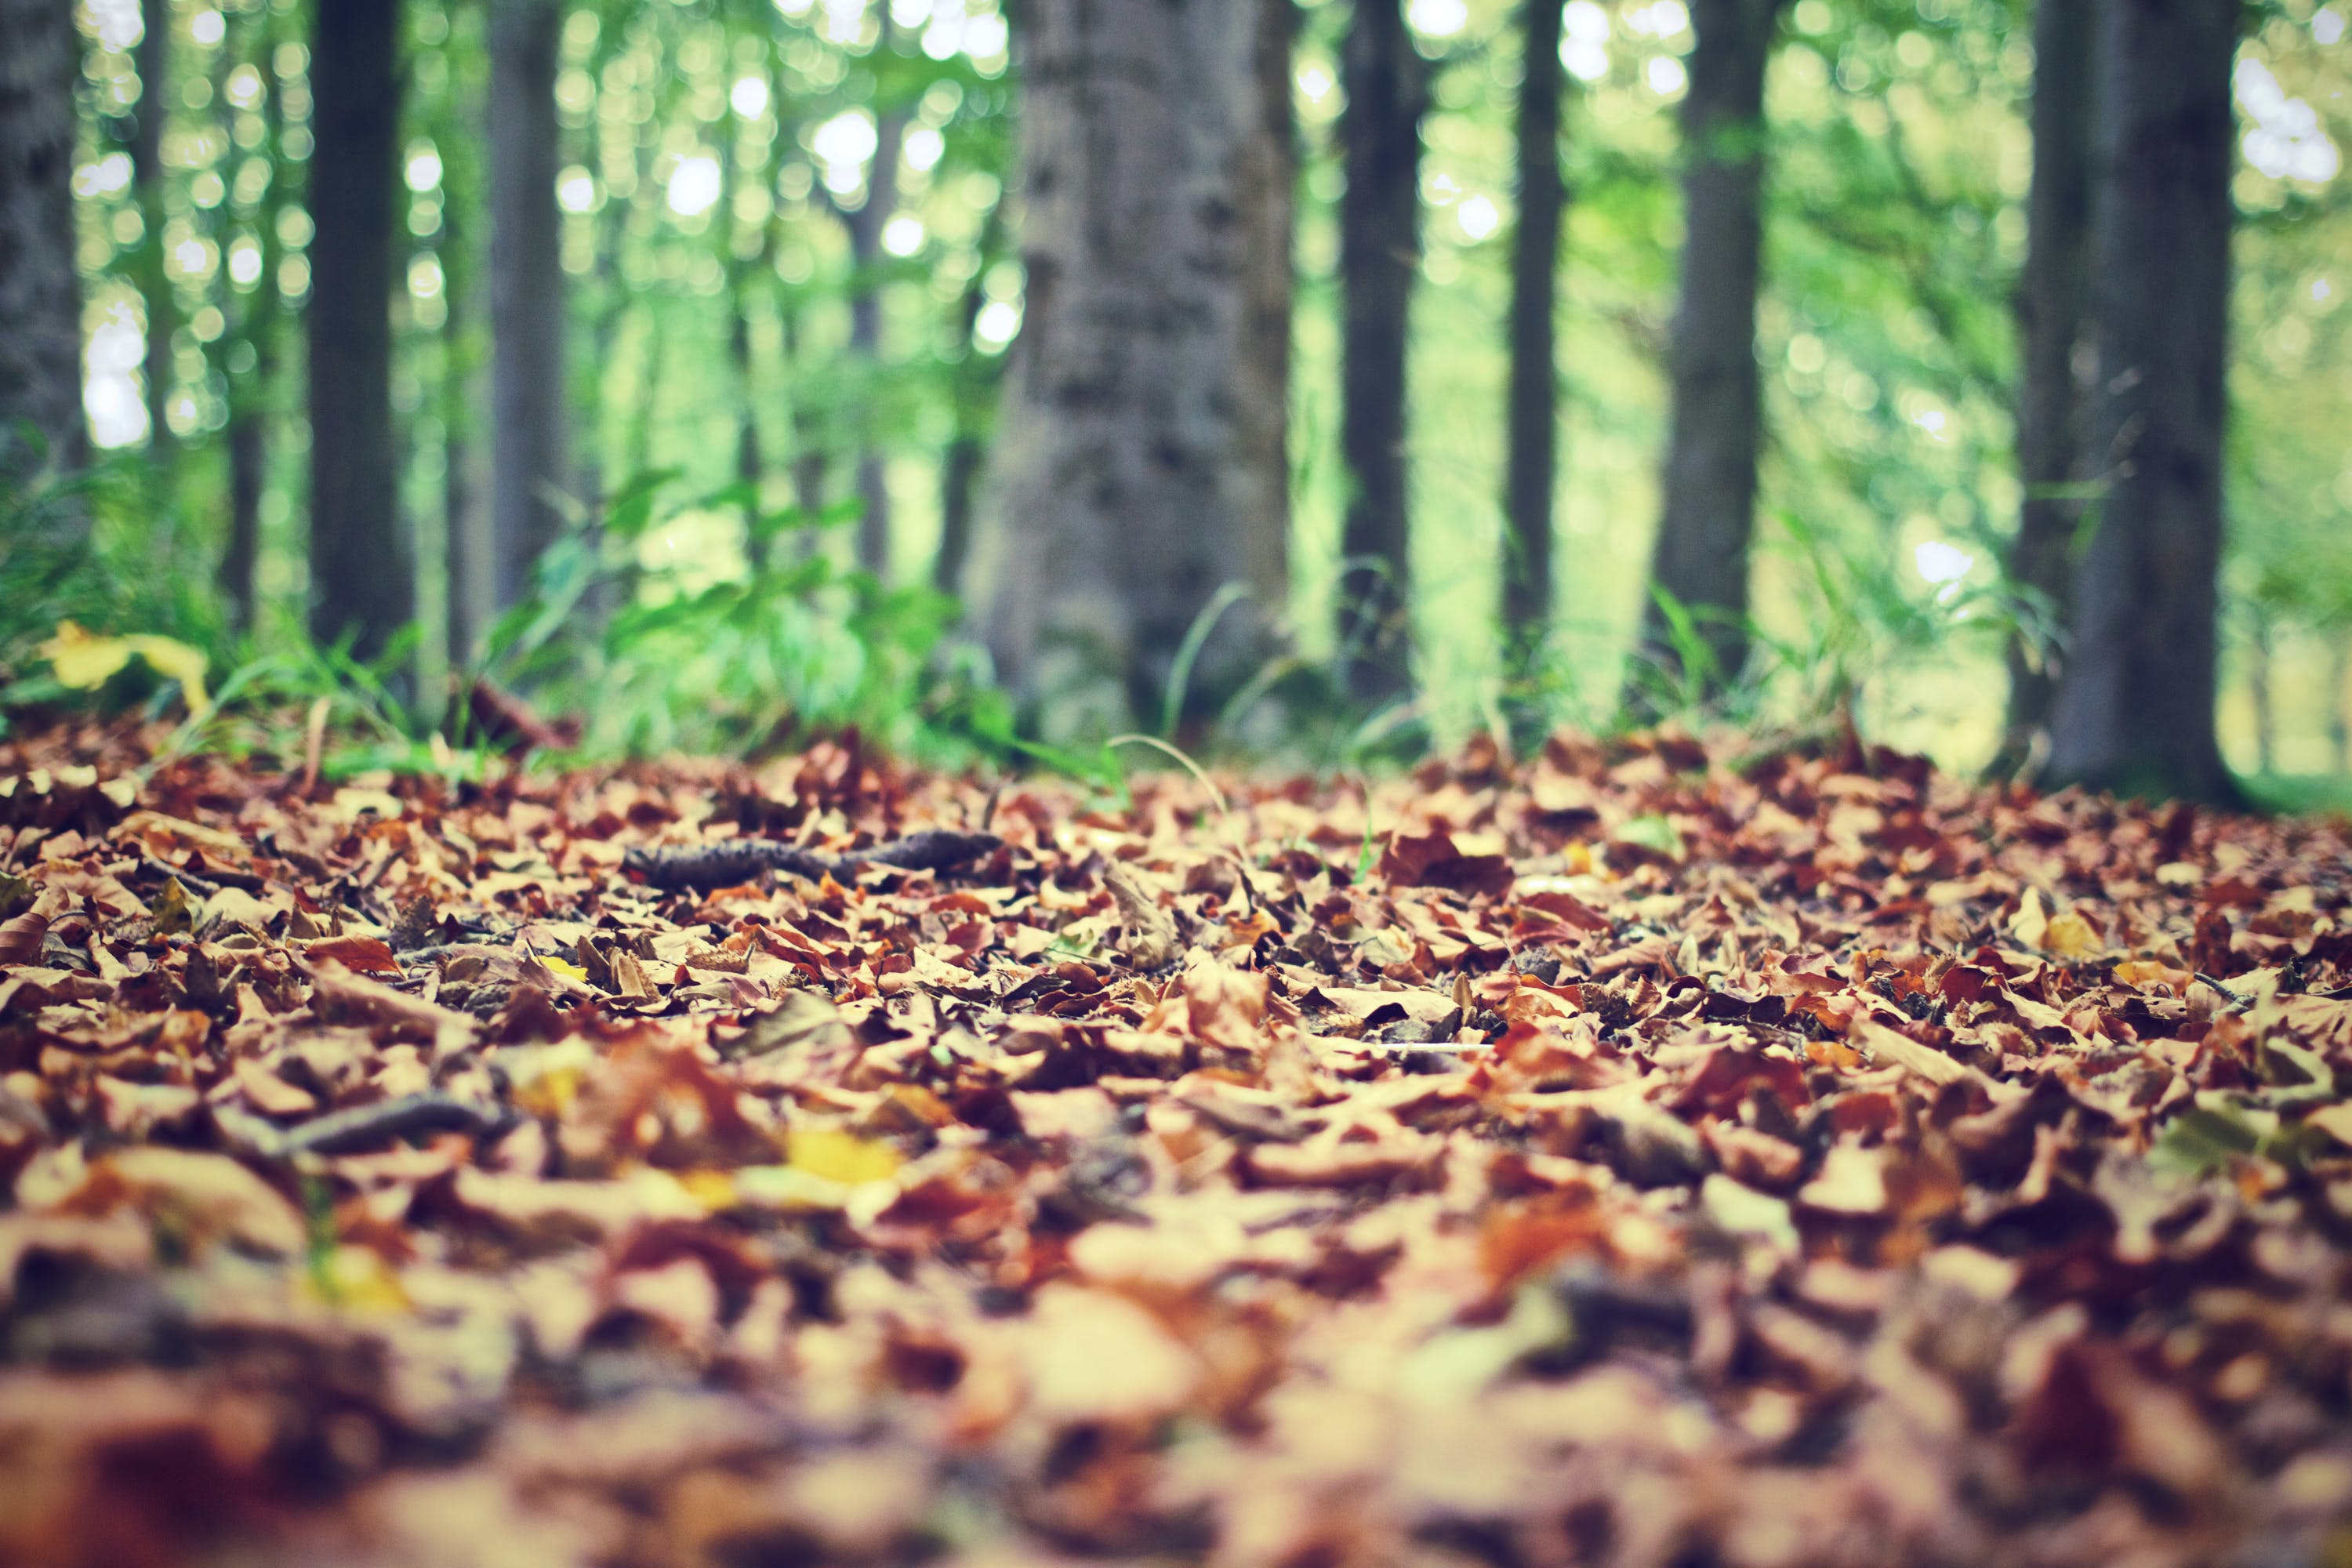 Free stock photo of nature, forest, leaves, ground